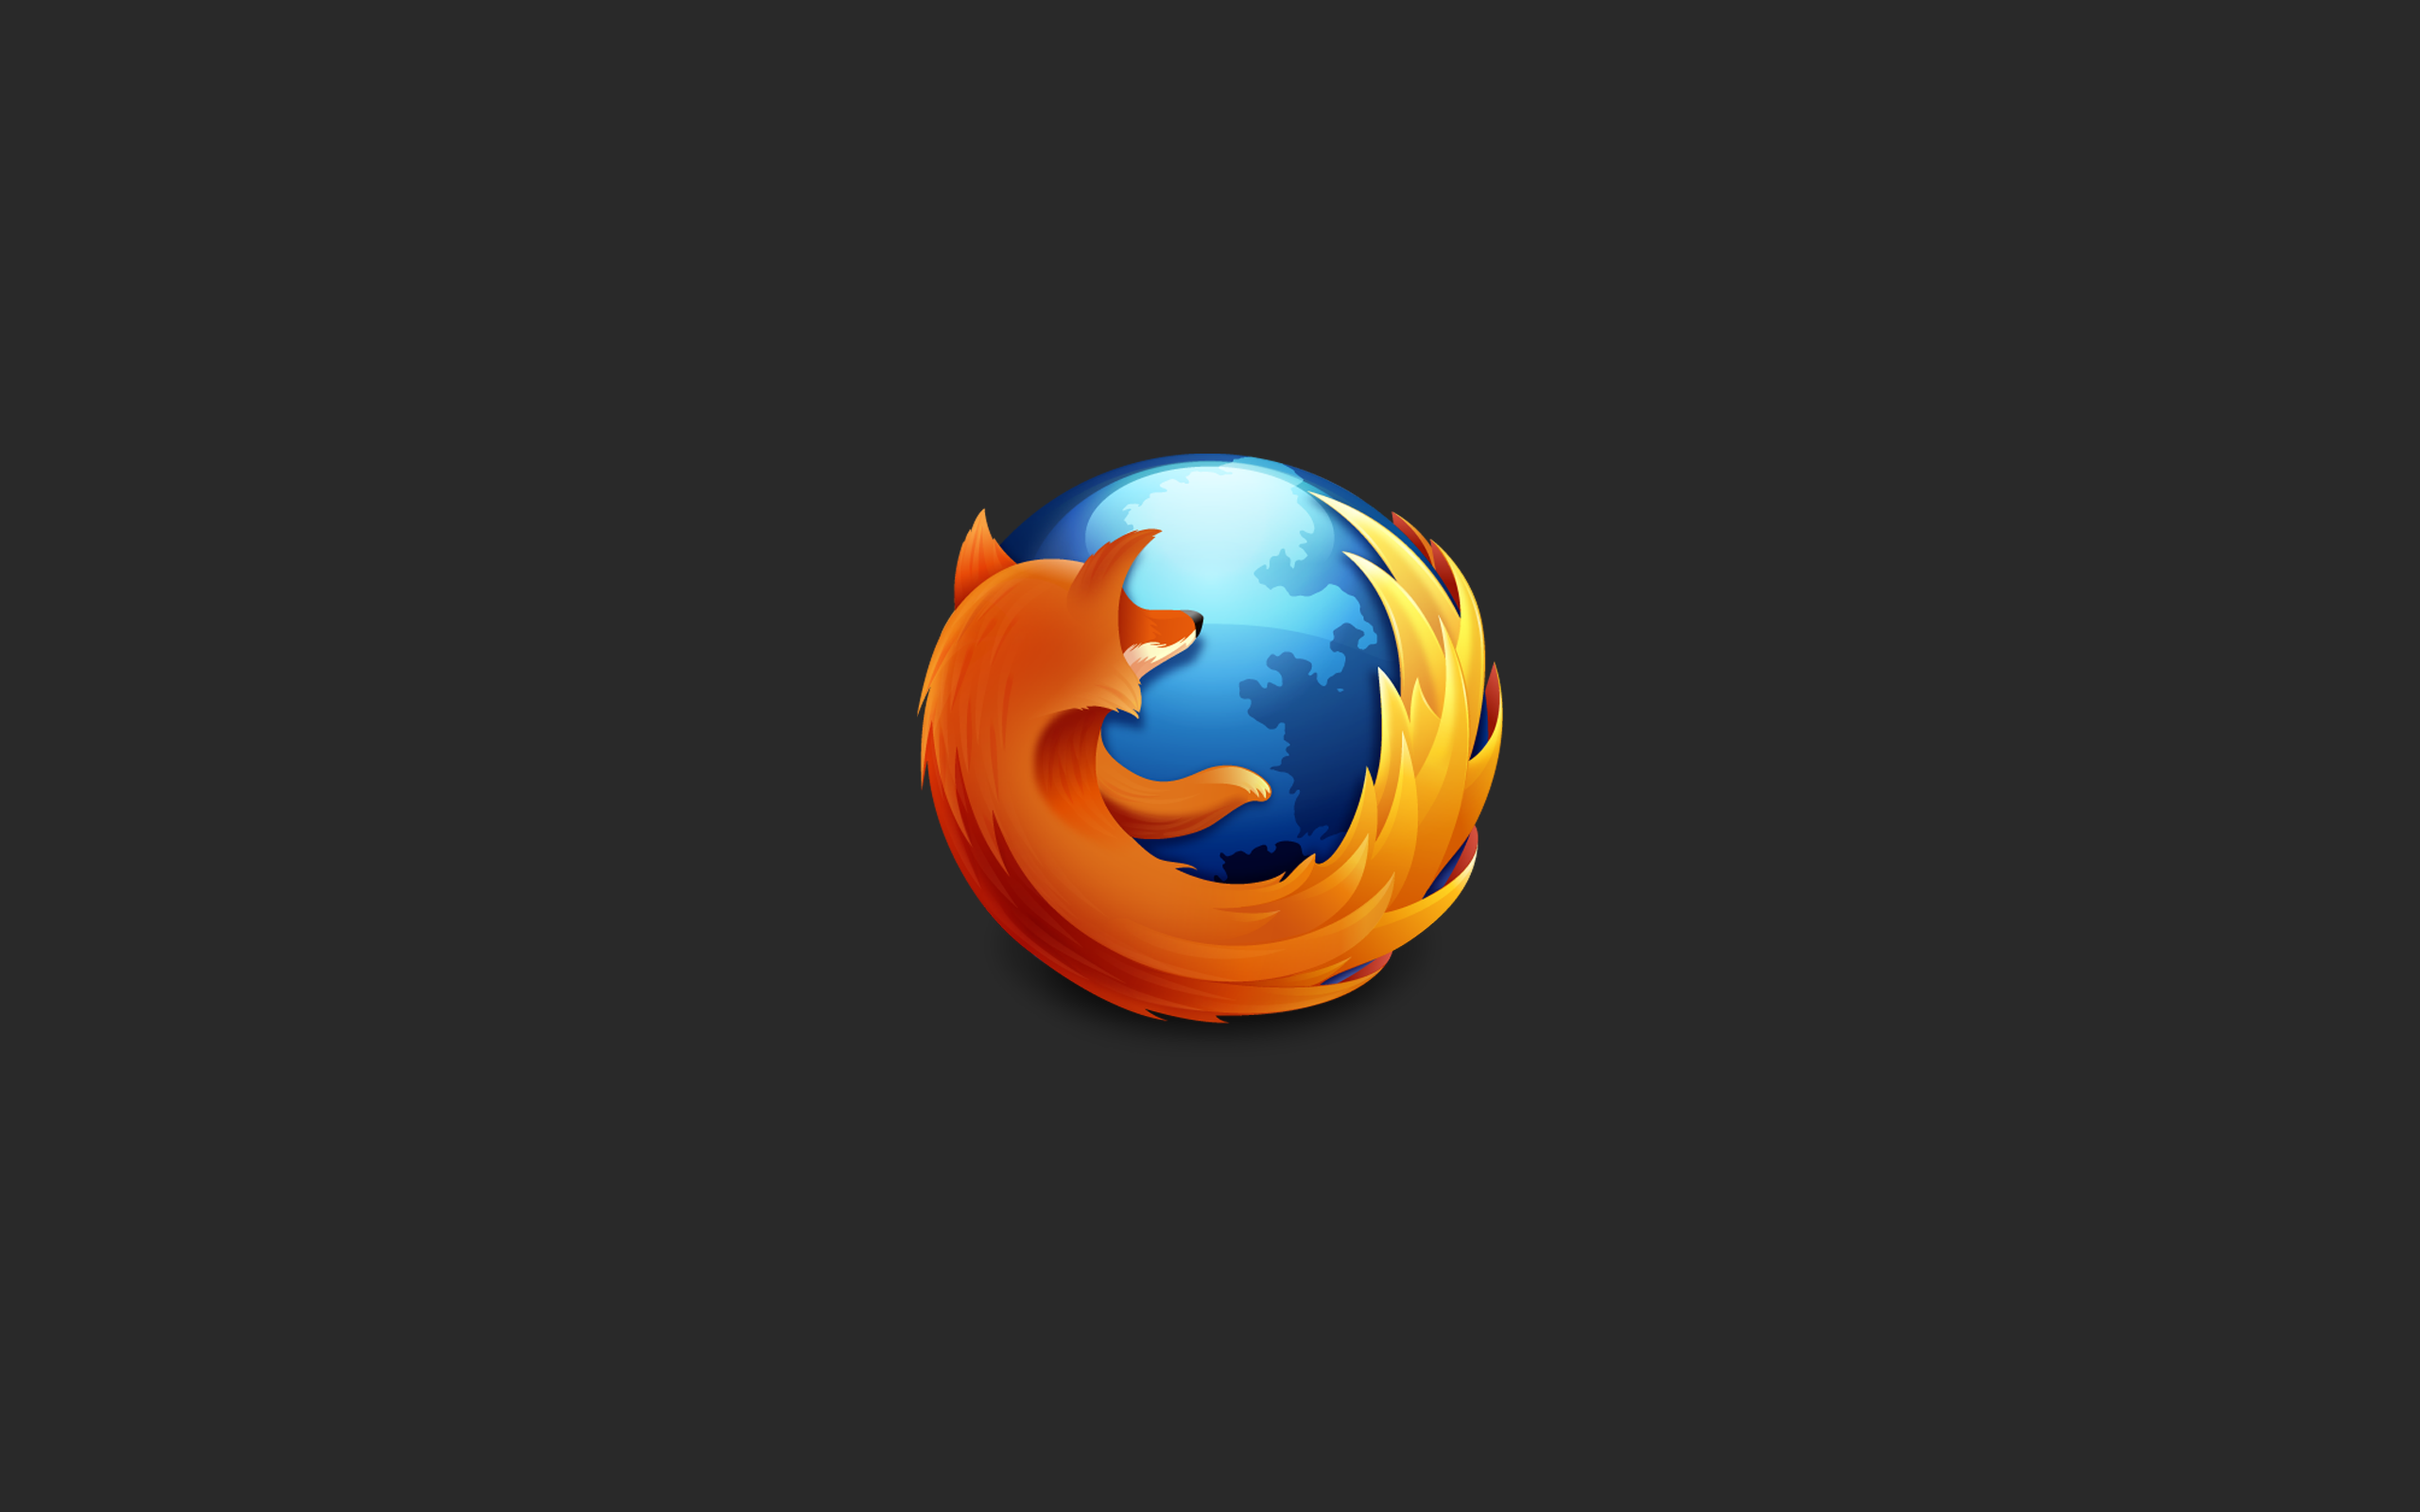 Firefox Wallpaper Set 7 Awesome Wallpapers 2560x1600